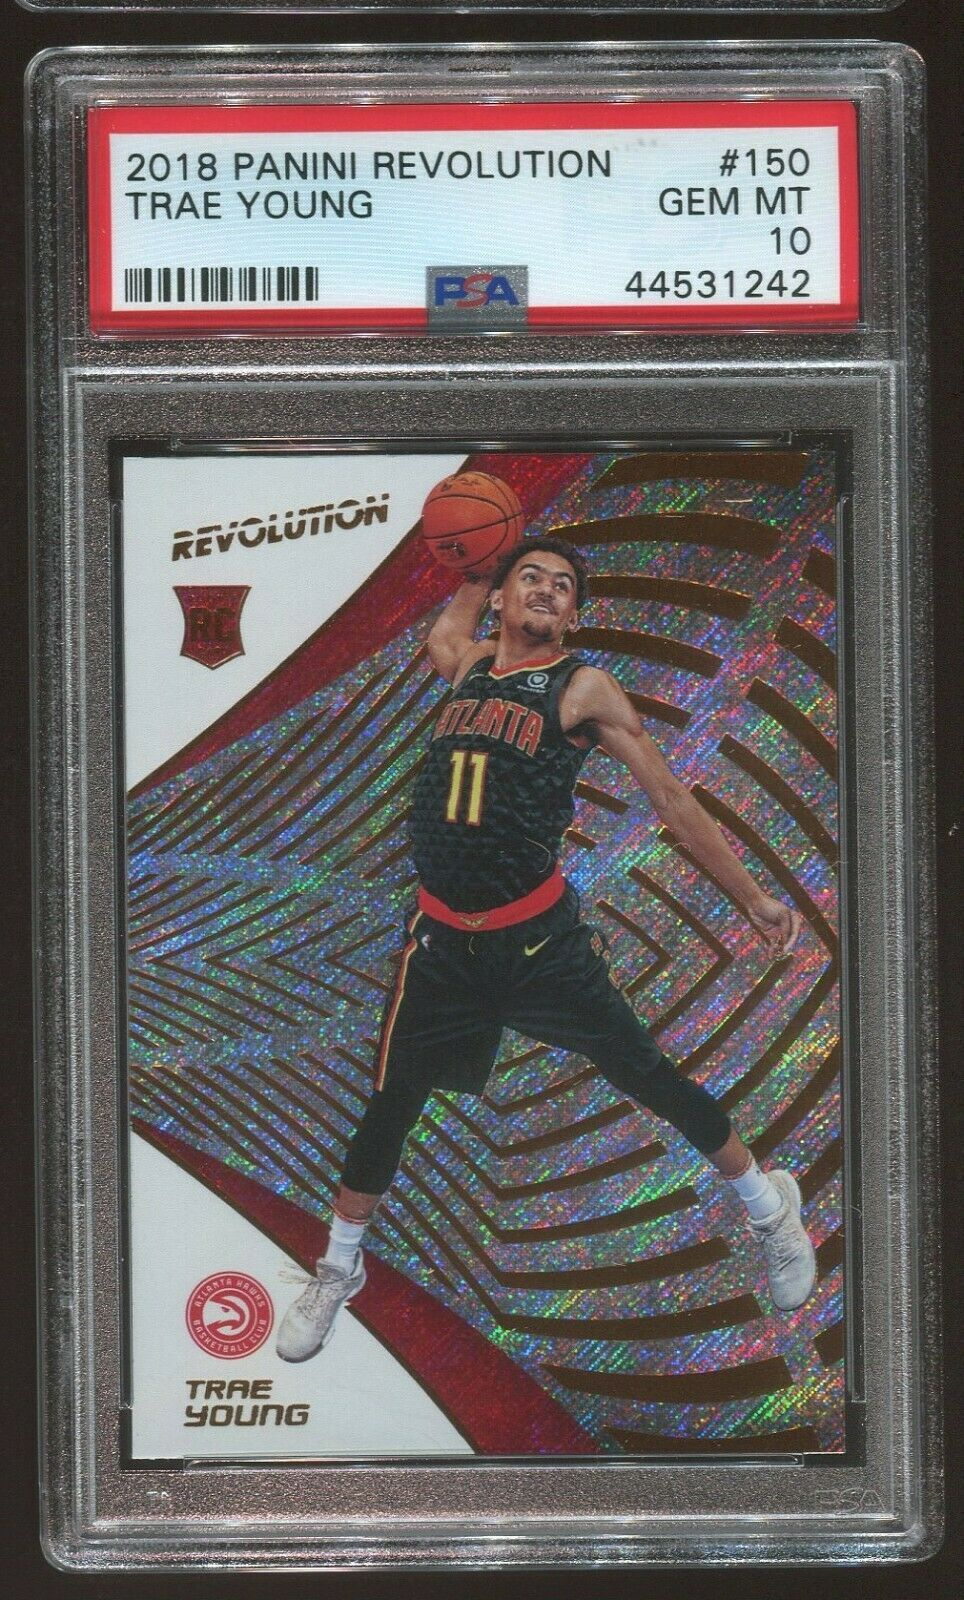 2018 19 Revolution Trae Young Rc 150 Psa 10 Ideas Of Trae Young Traeyoung In 2020 Revolution Mosaic